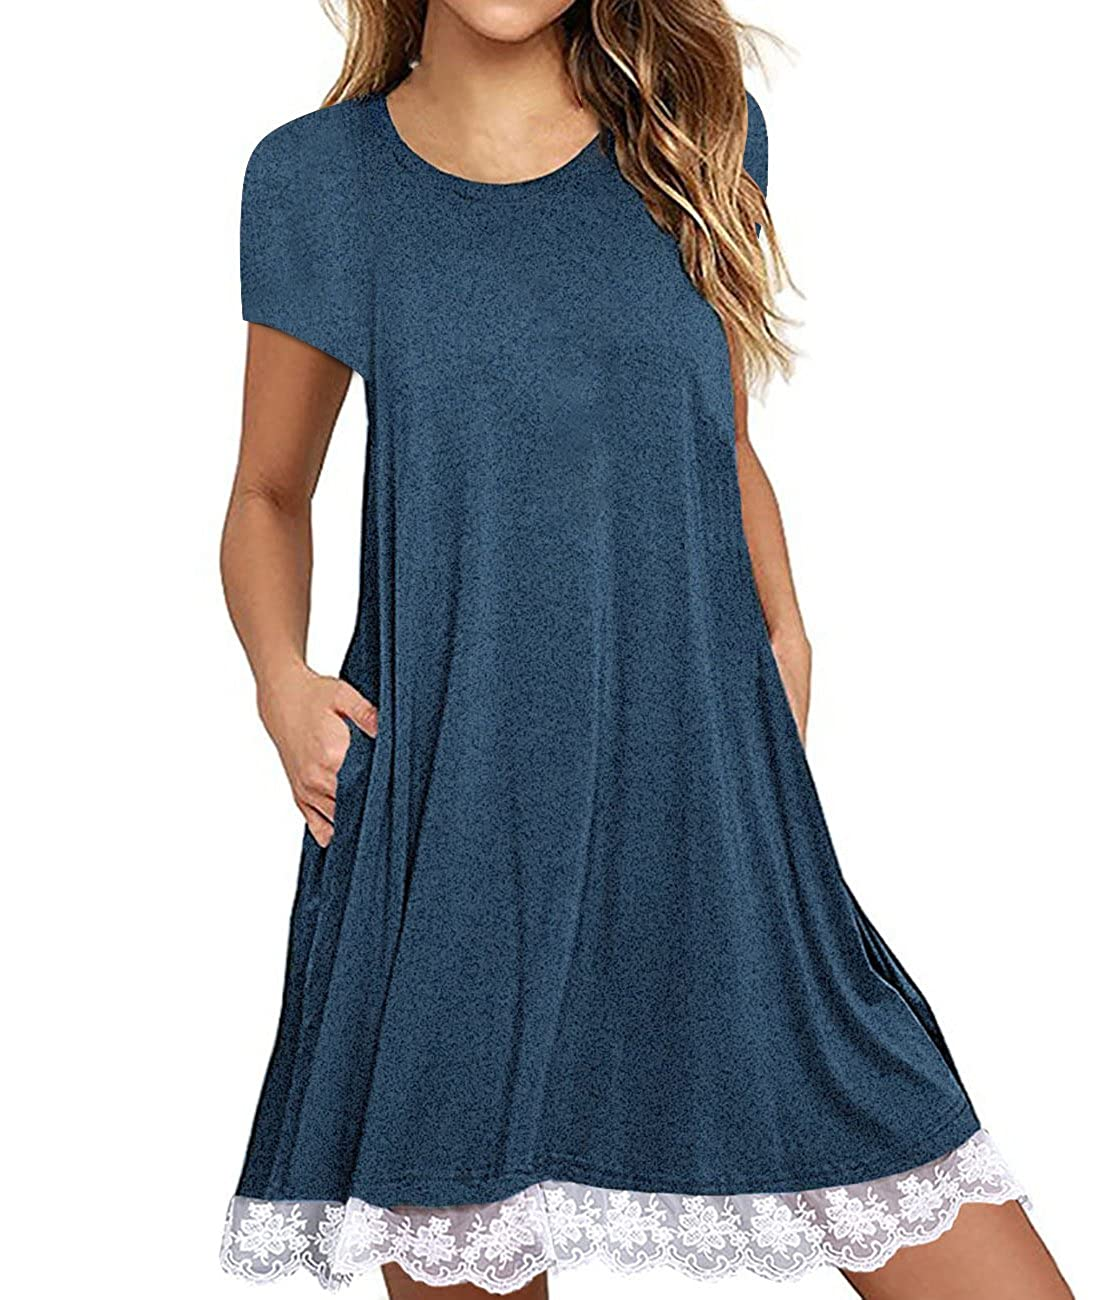 698de87ecb0 A-line tunic dress is featuring short sleeve,pockets on two sides,crew neck, lace hem,plus size t shirt dress, above knee length,loose and casual style.